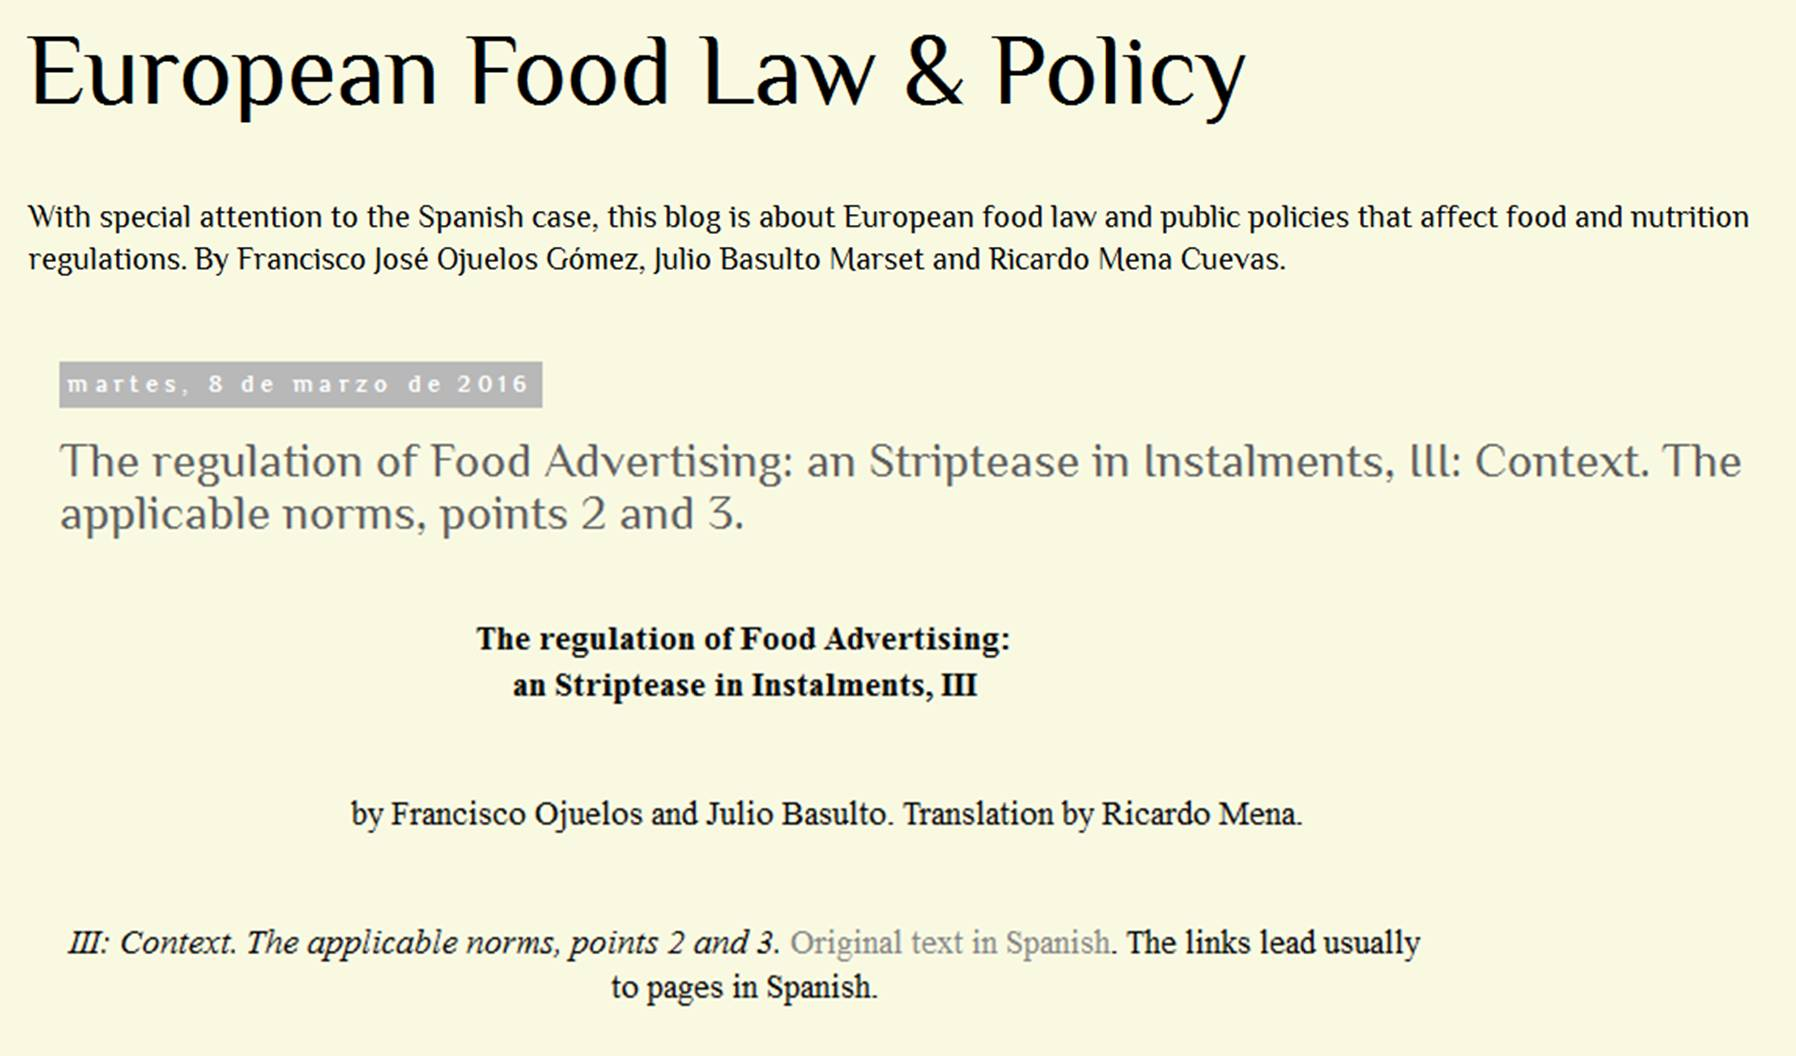 The Regulation of Food Advertising: a Striptease in Instalments, III: Context. The applicable norms, points 2 and 3